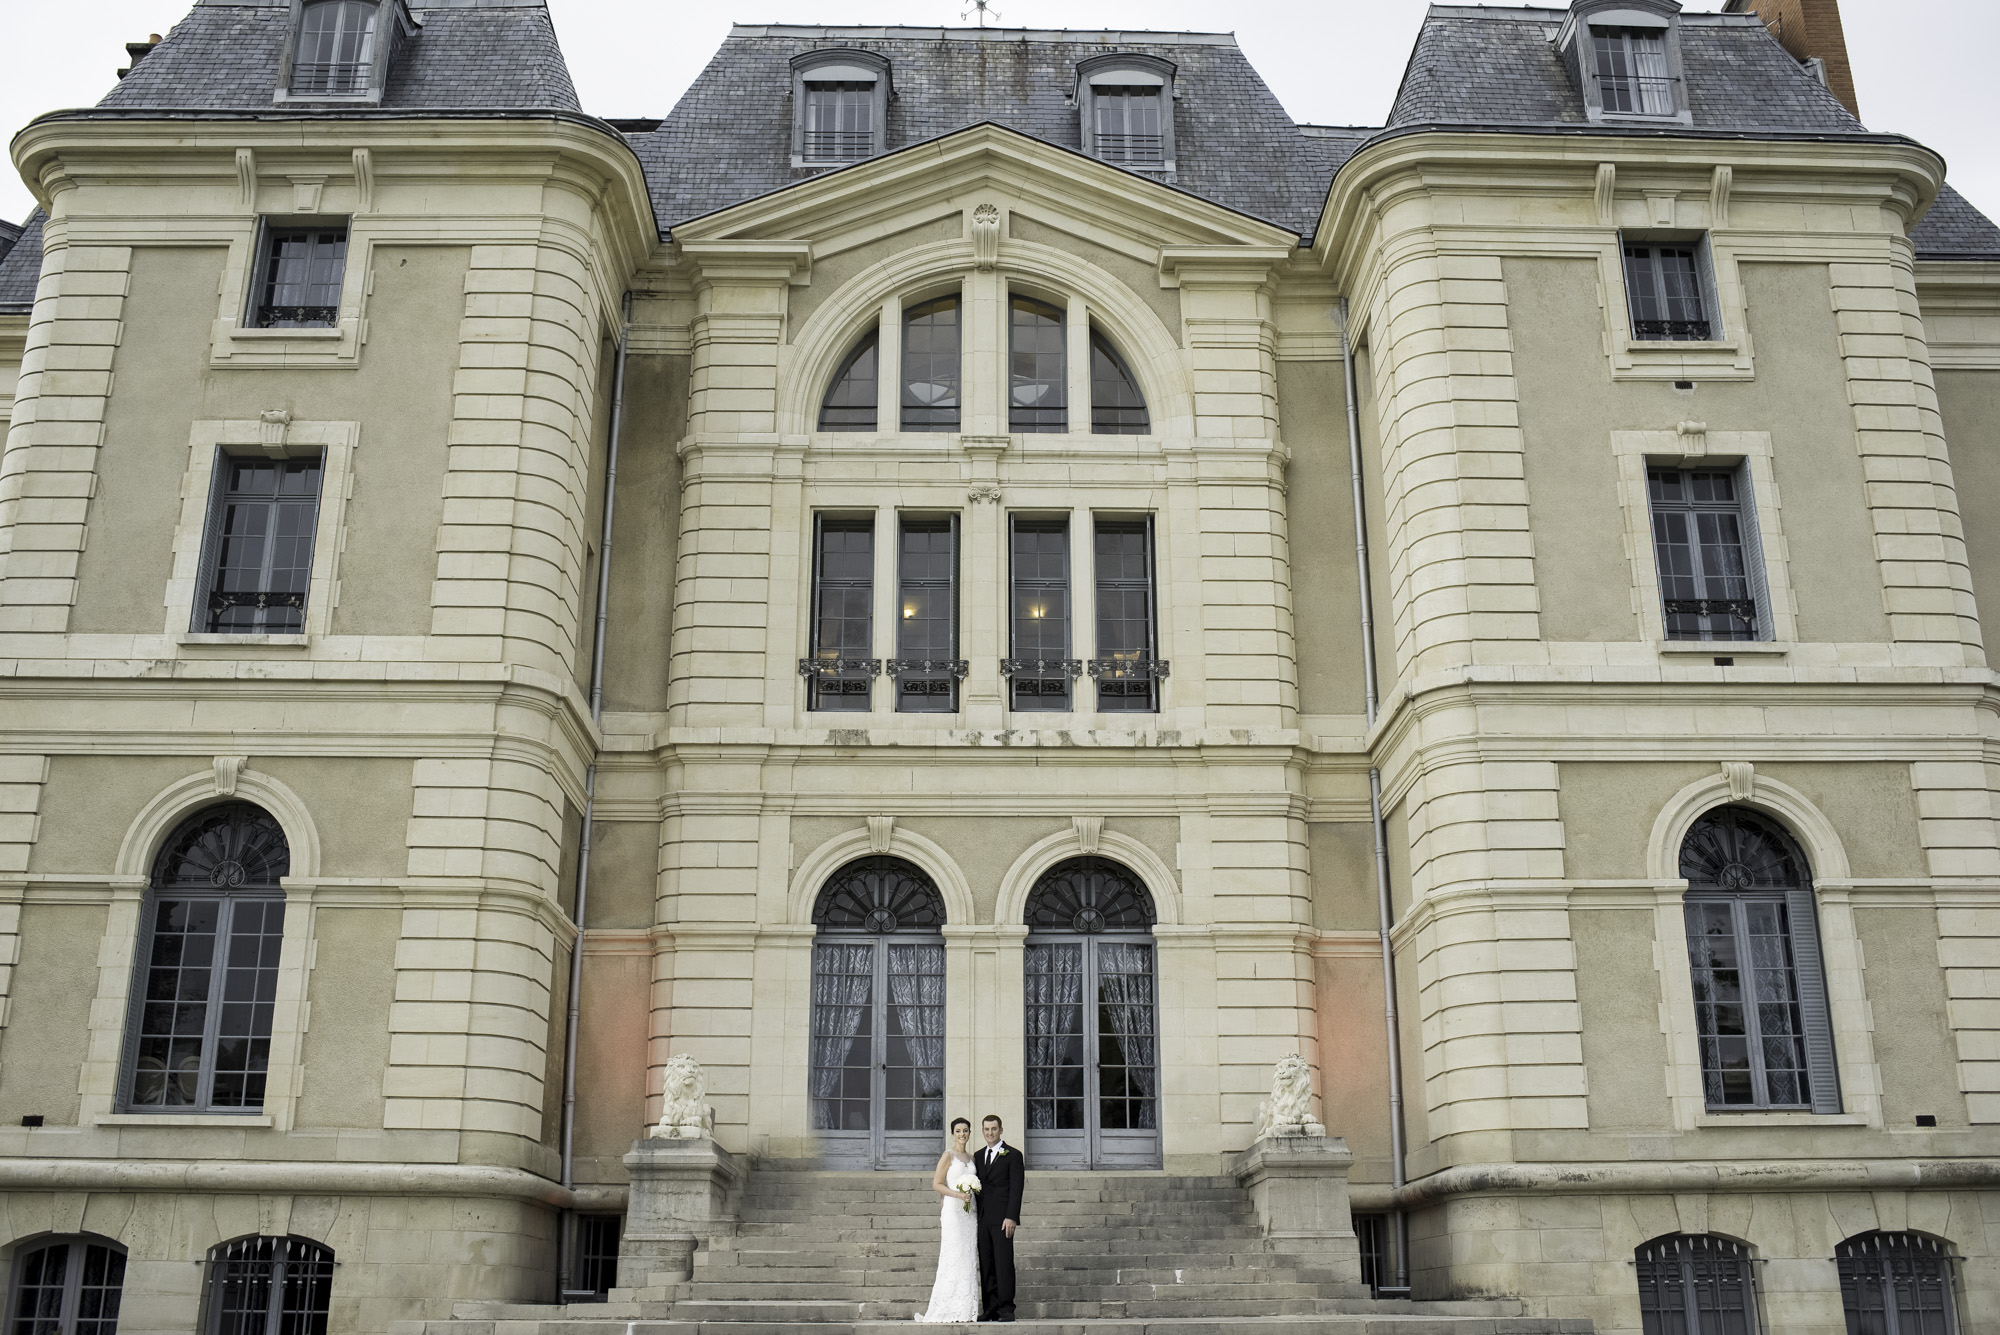 Chateau la Caniere | Wedding photographer Clermont-Ferrand Auvergne